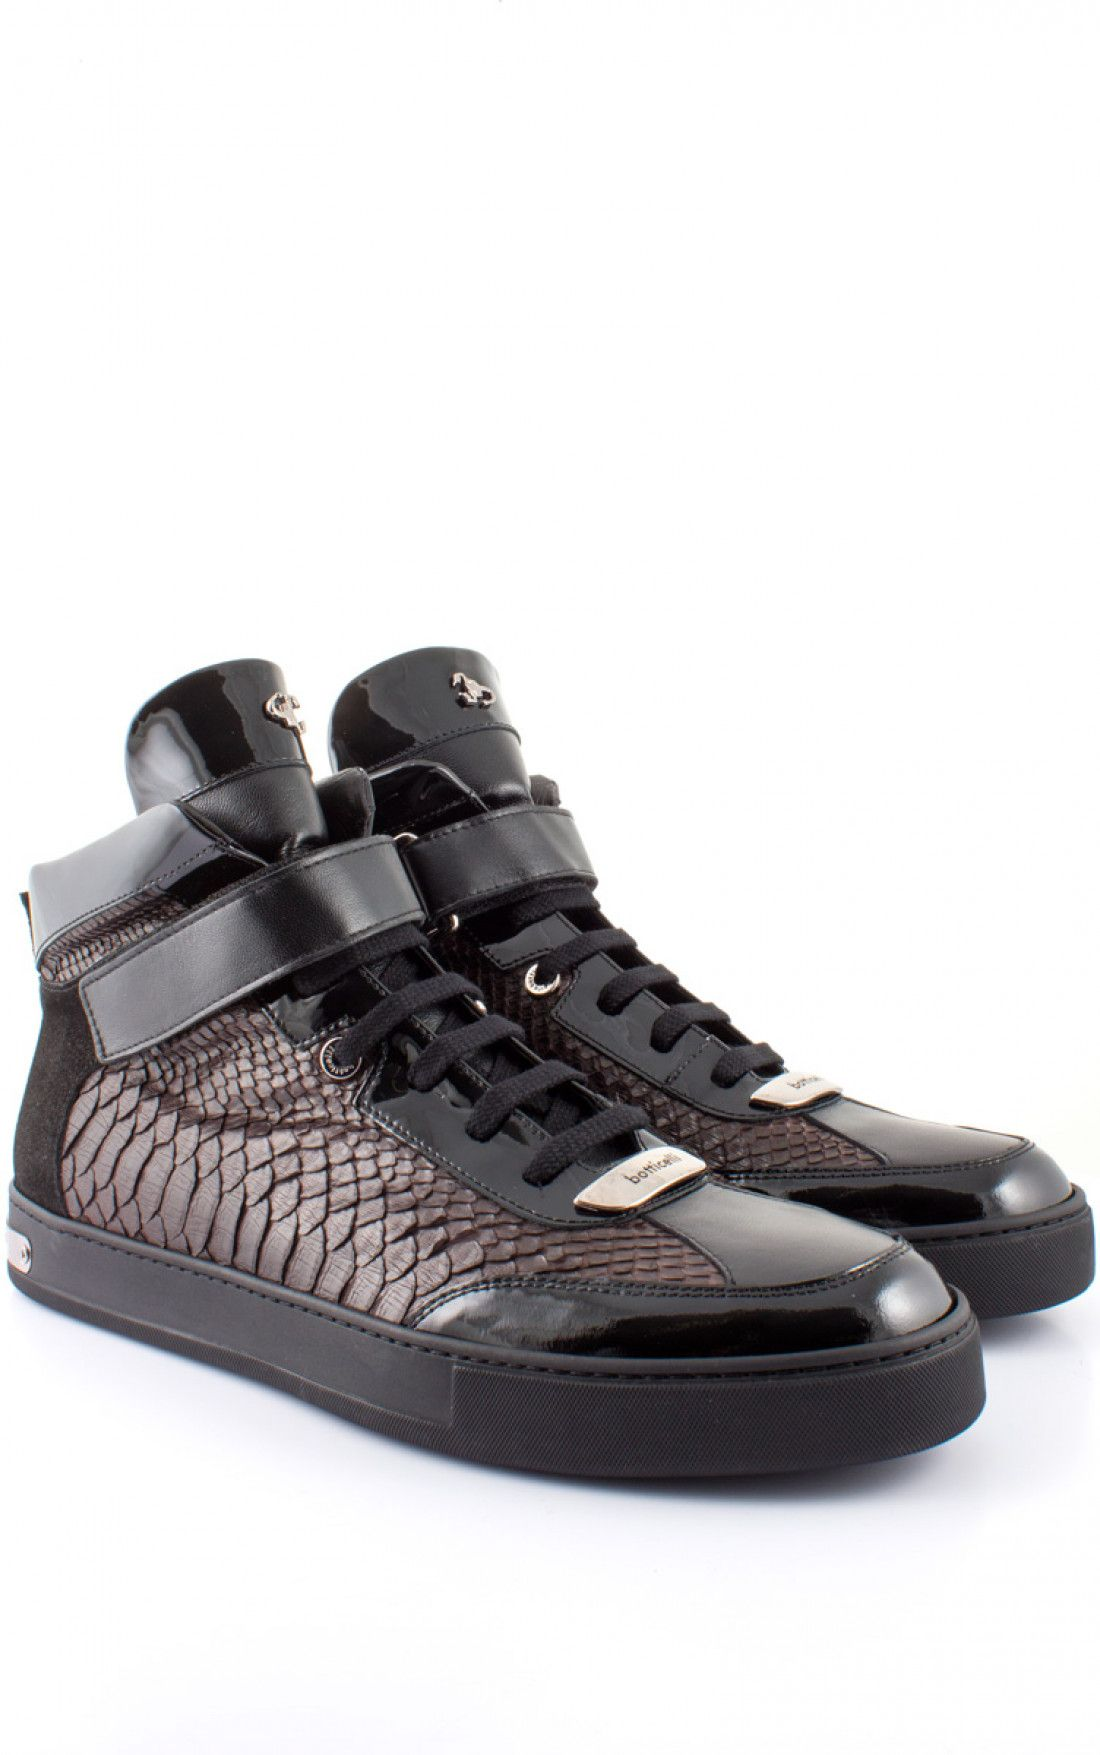 5e33e81aaccb ROBERTO BOTTICELLI   Python Hightop Black